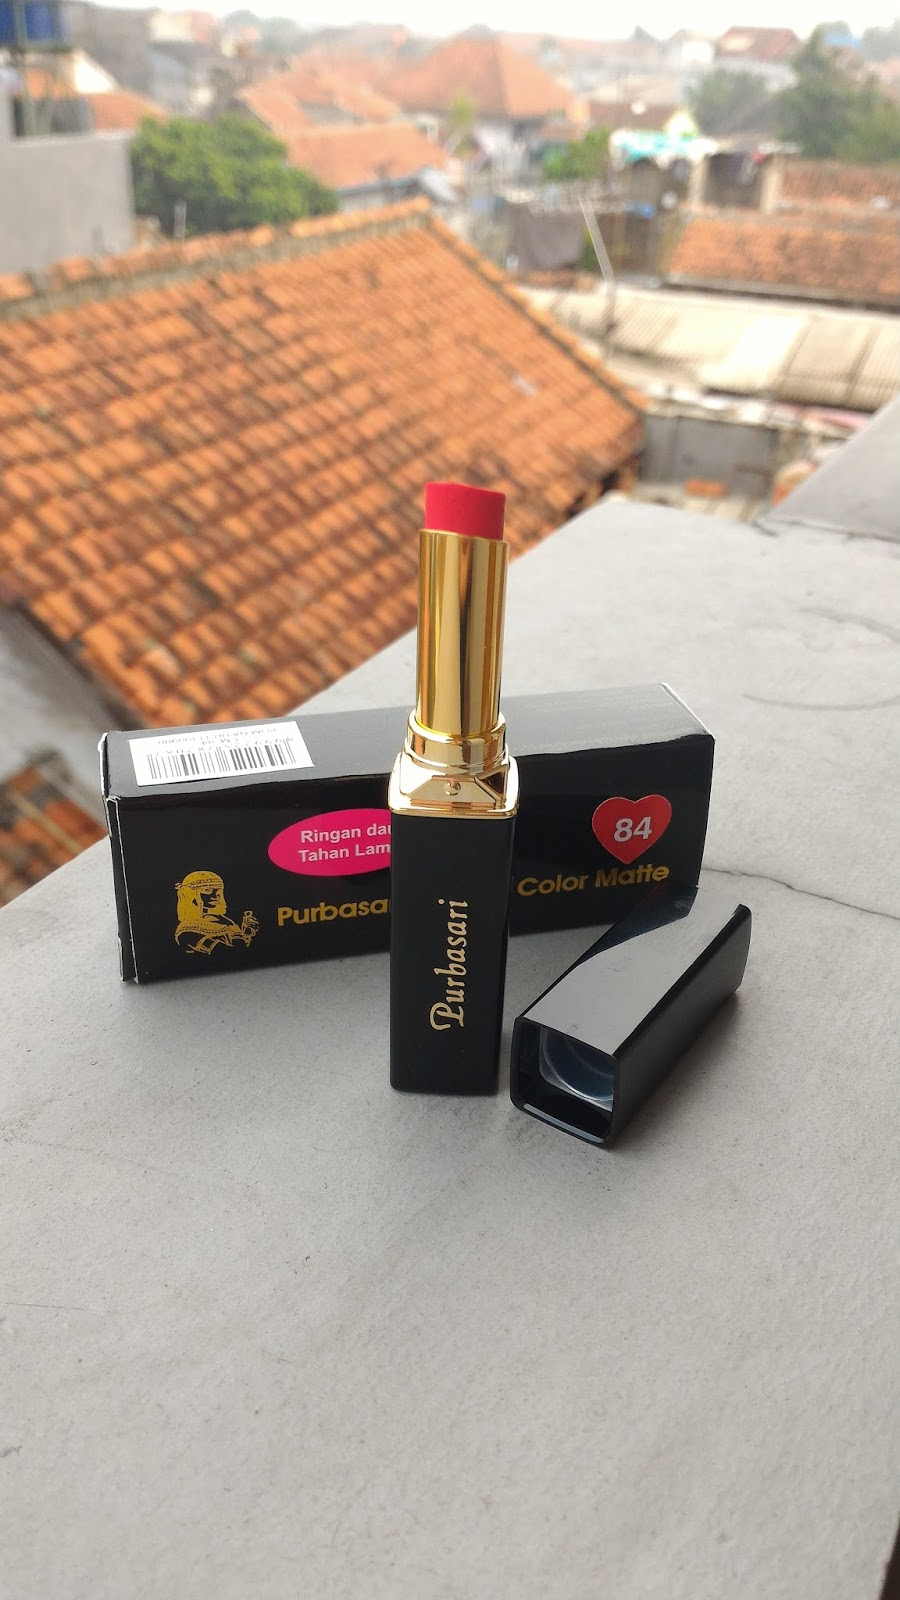 When Lifes Get Hard Do What Makes You Happy Purbasari Lipstick Lipstik Collor Matte Color 84 Ruby Review